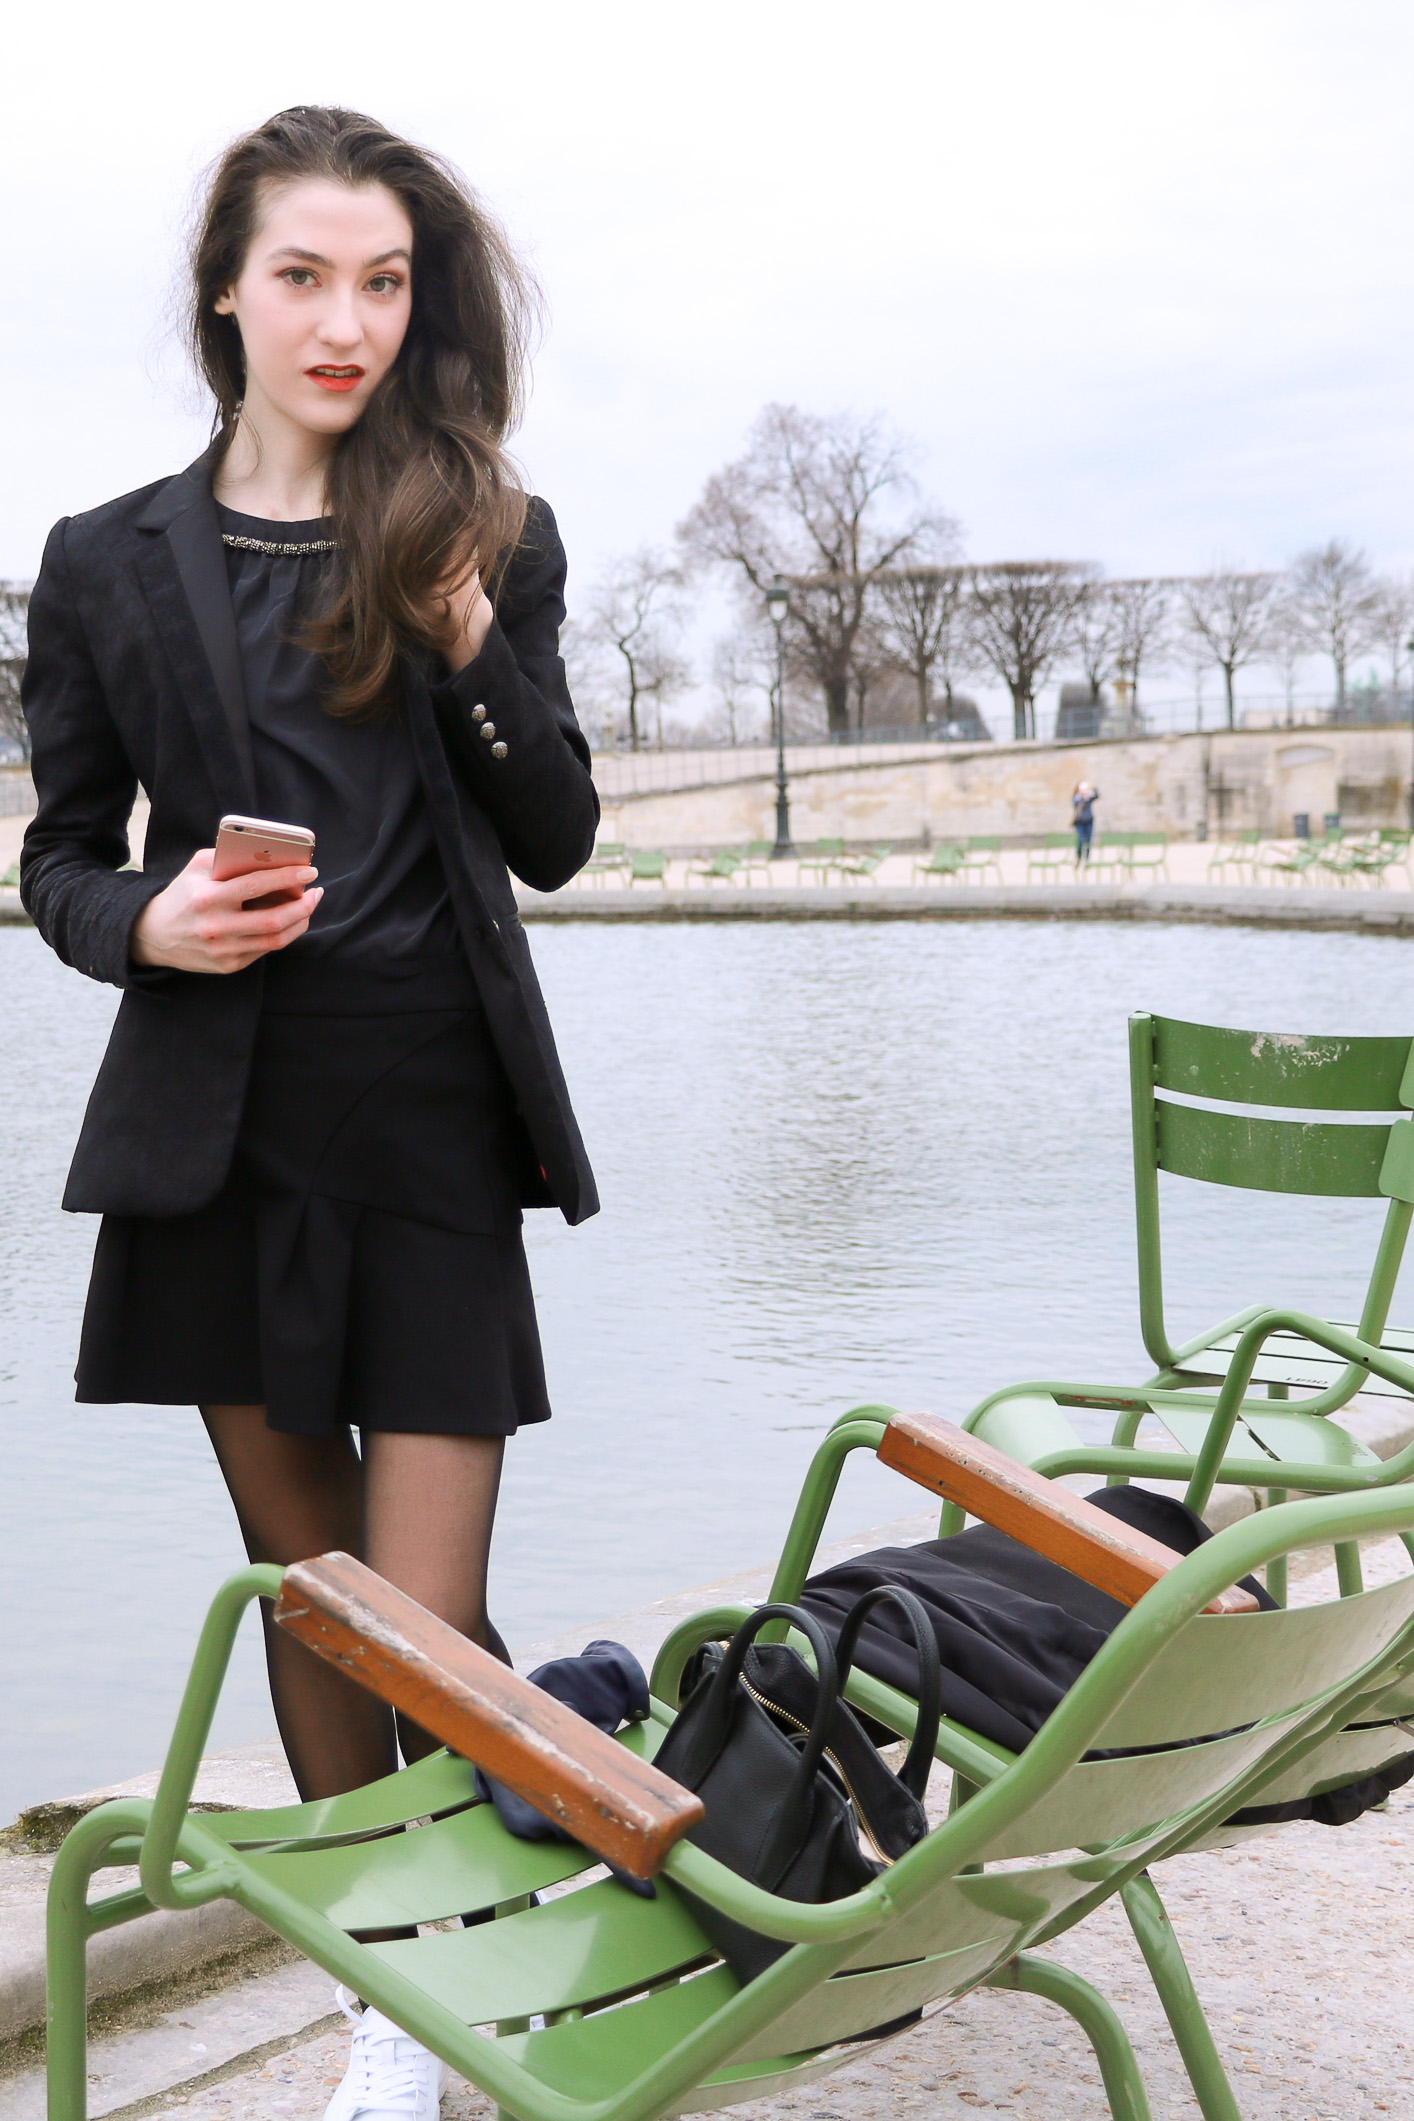 Fashion Blogger Veronika Lipar of Brunette from Wall Street sharing how to dress as a Parisian